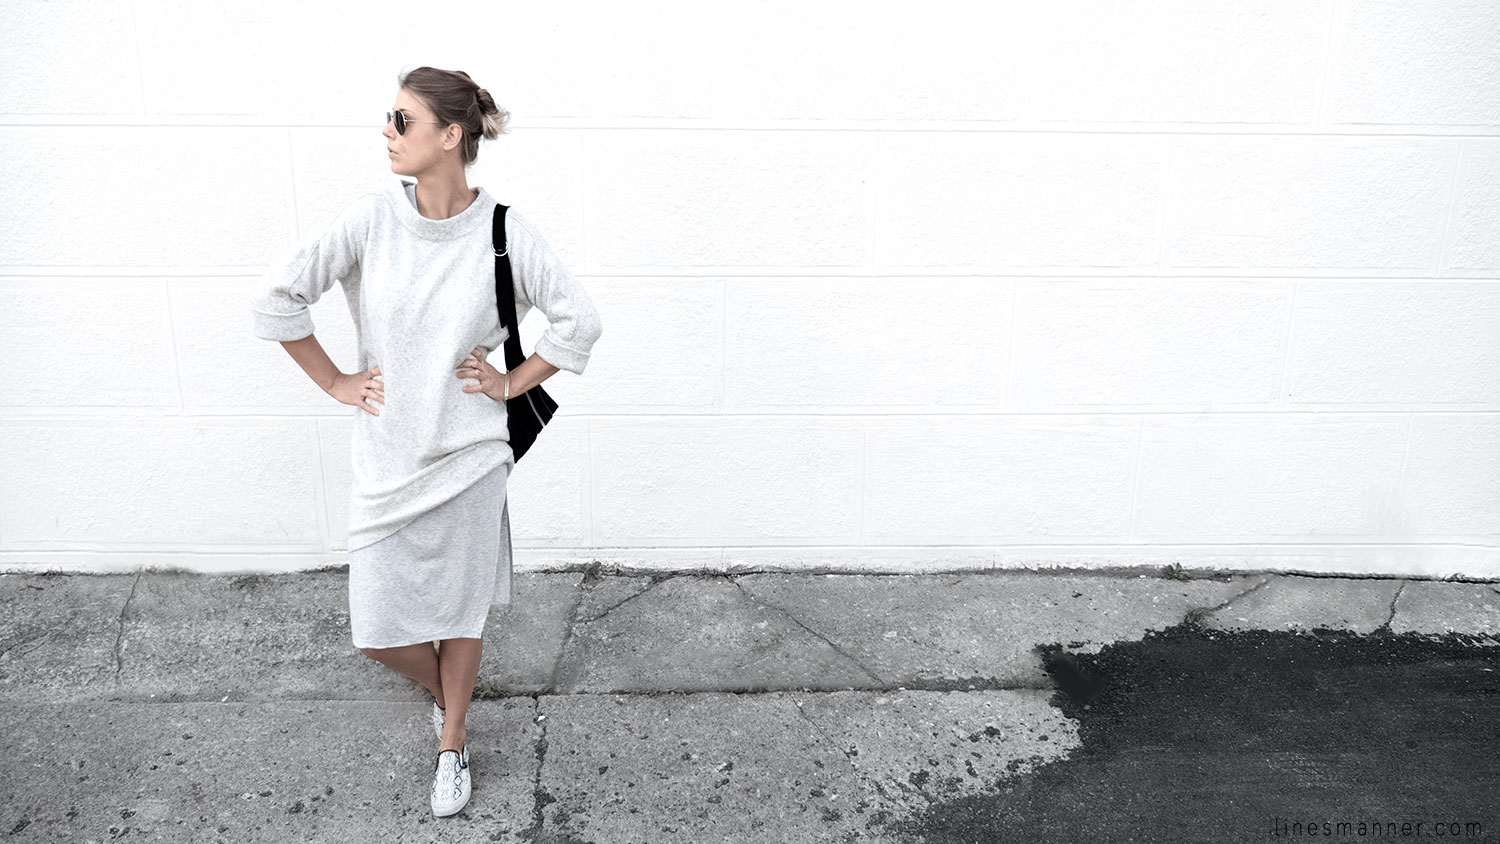 Lines-Manner-Fashion-Collaboration-The_Demeler-Monochrome-Grey_on_Grey-Fresh-Brightly-Outfit-Simplicity-Details-Trend-Minimalist-Flowy-Layering-Sleeves-Sweater_Dress-8